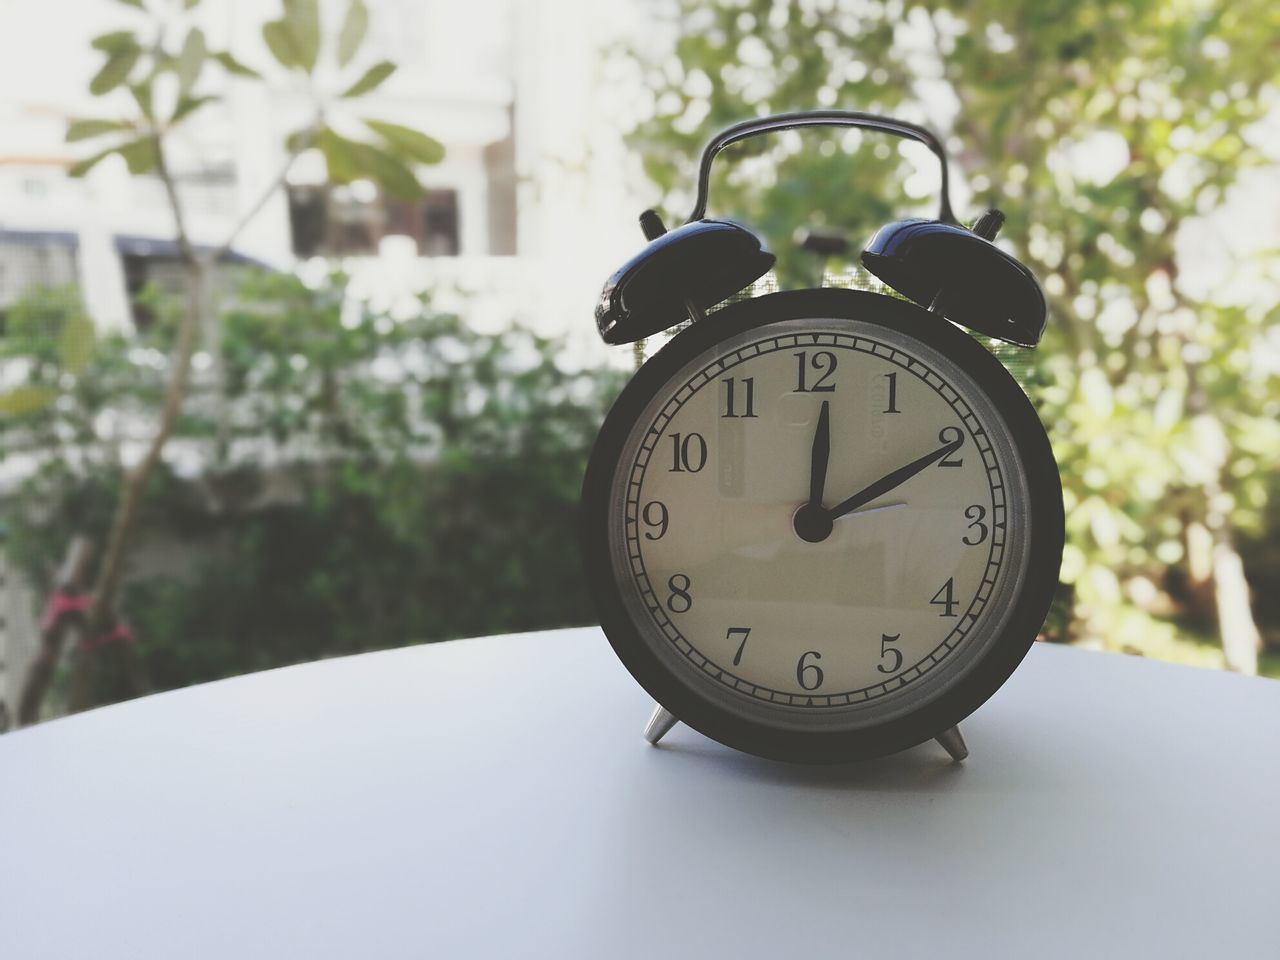 Time Alarm Clock Clock Instrument Of Time Focus On Foreground No People Hour Hand Clock Face Minute Hand Nature Outdoors Waking Up Day Close-up Nature Afternoons Noon Time AlarmClock Single Object Times Wakeup First Cold Temperature